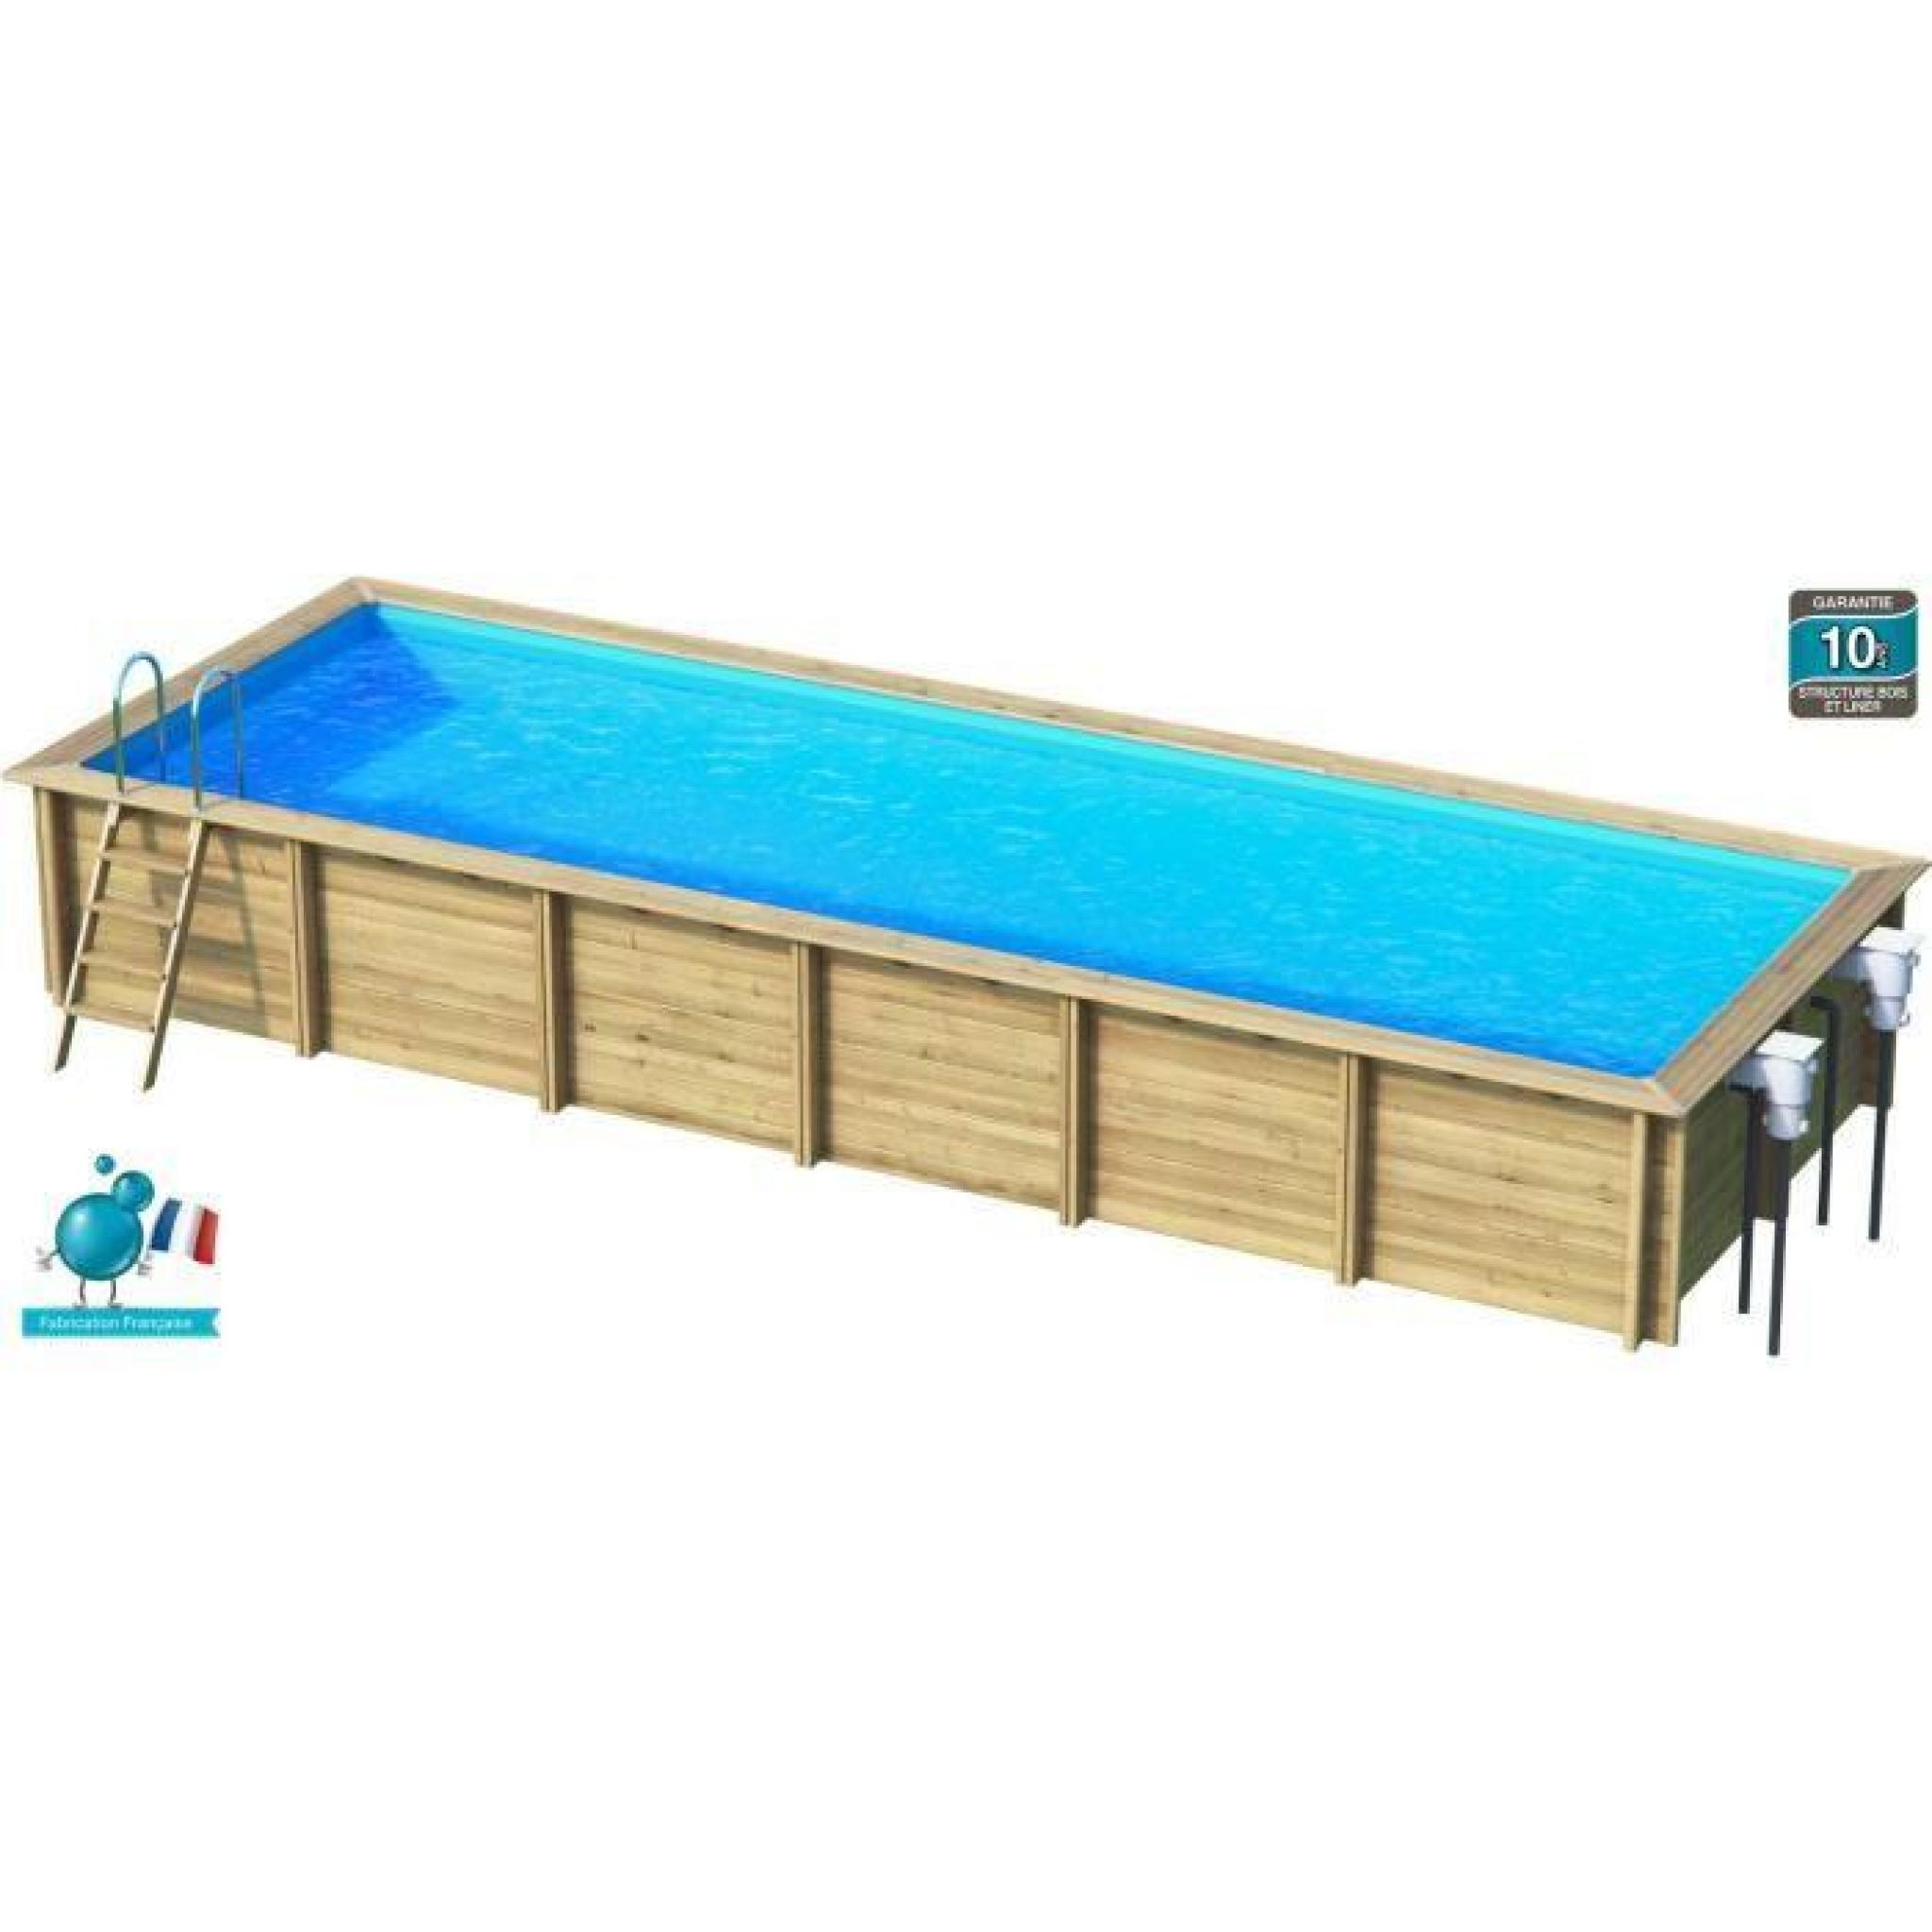 Weva piscine bois rectangle 9x3 m hauteur 1 33 m achat for Piscine 33